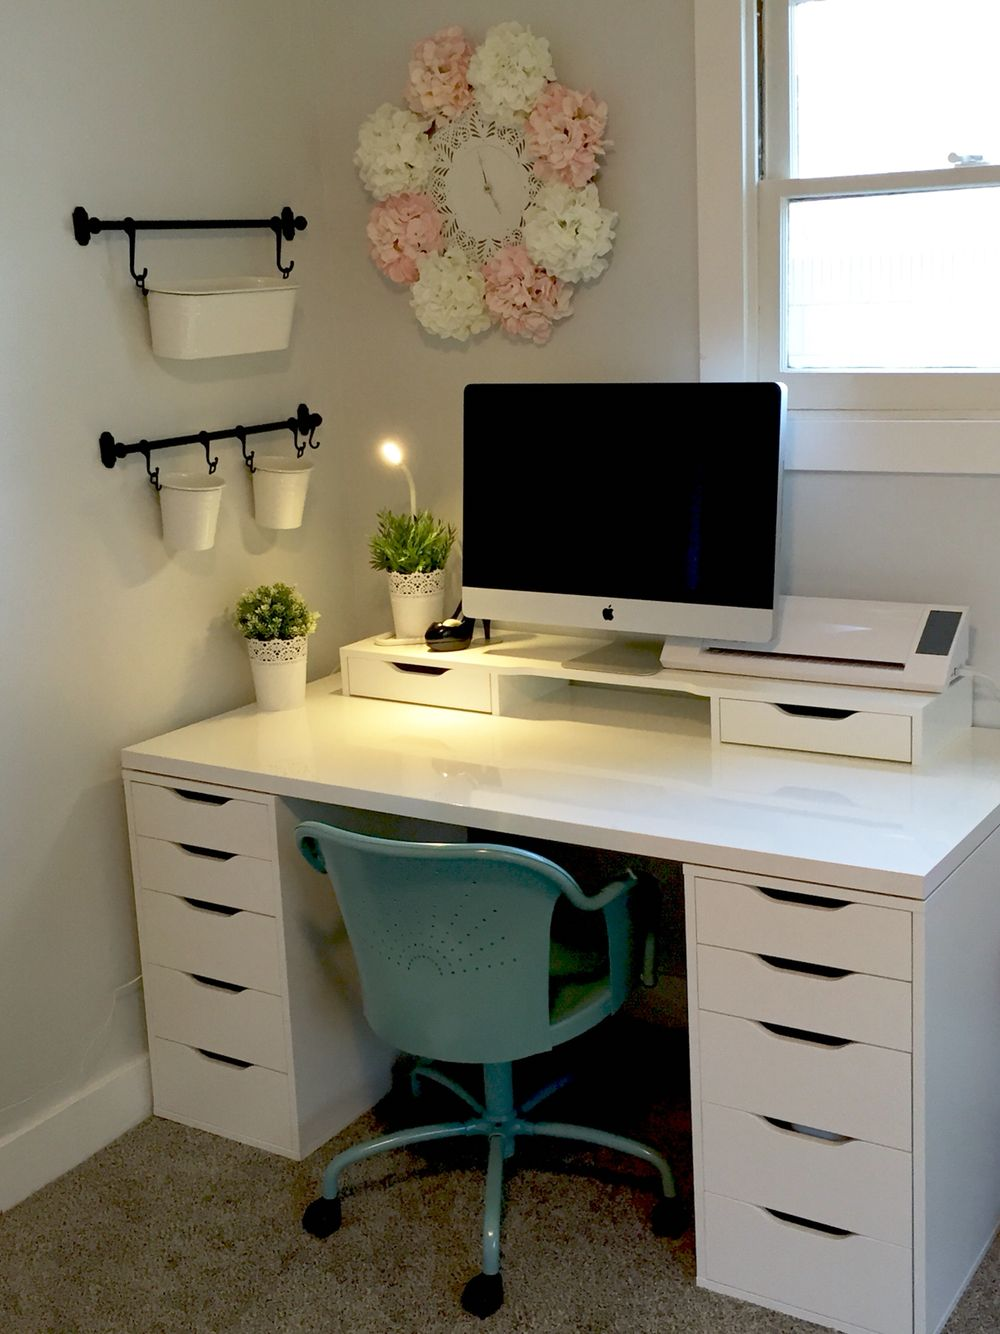 The 25 best ikea alex desk ideas on pinterest desks for Ikea meuble rangement mural